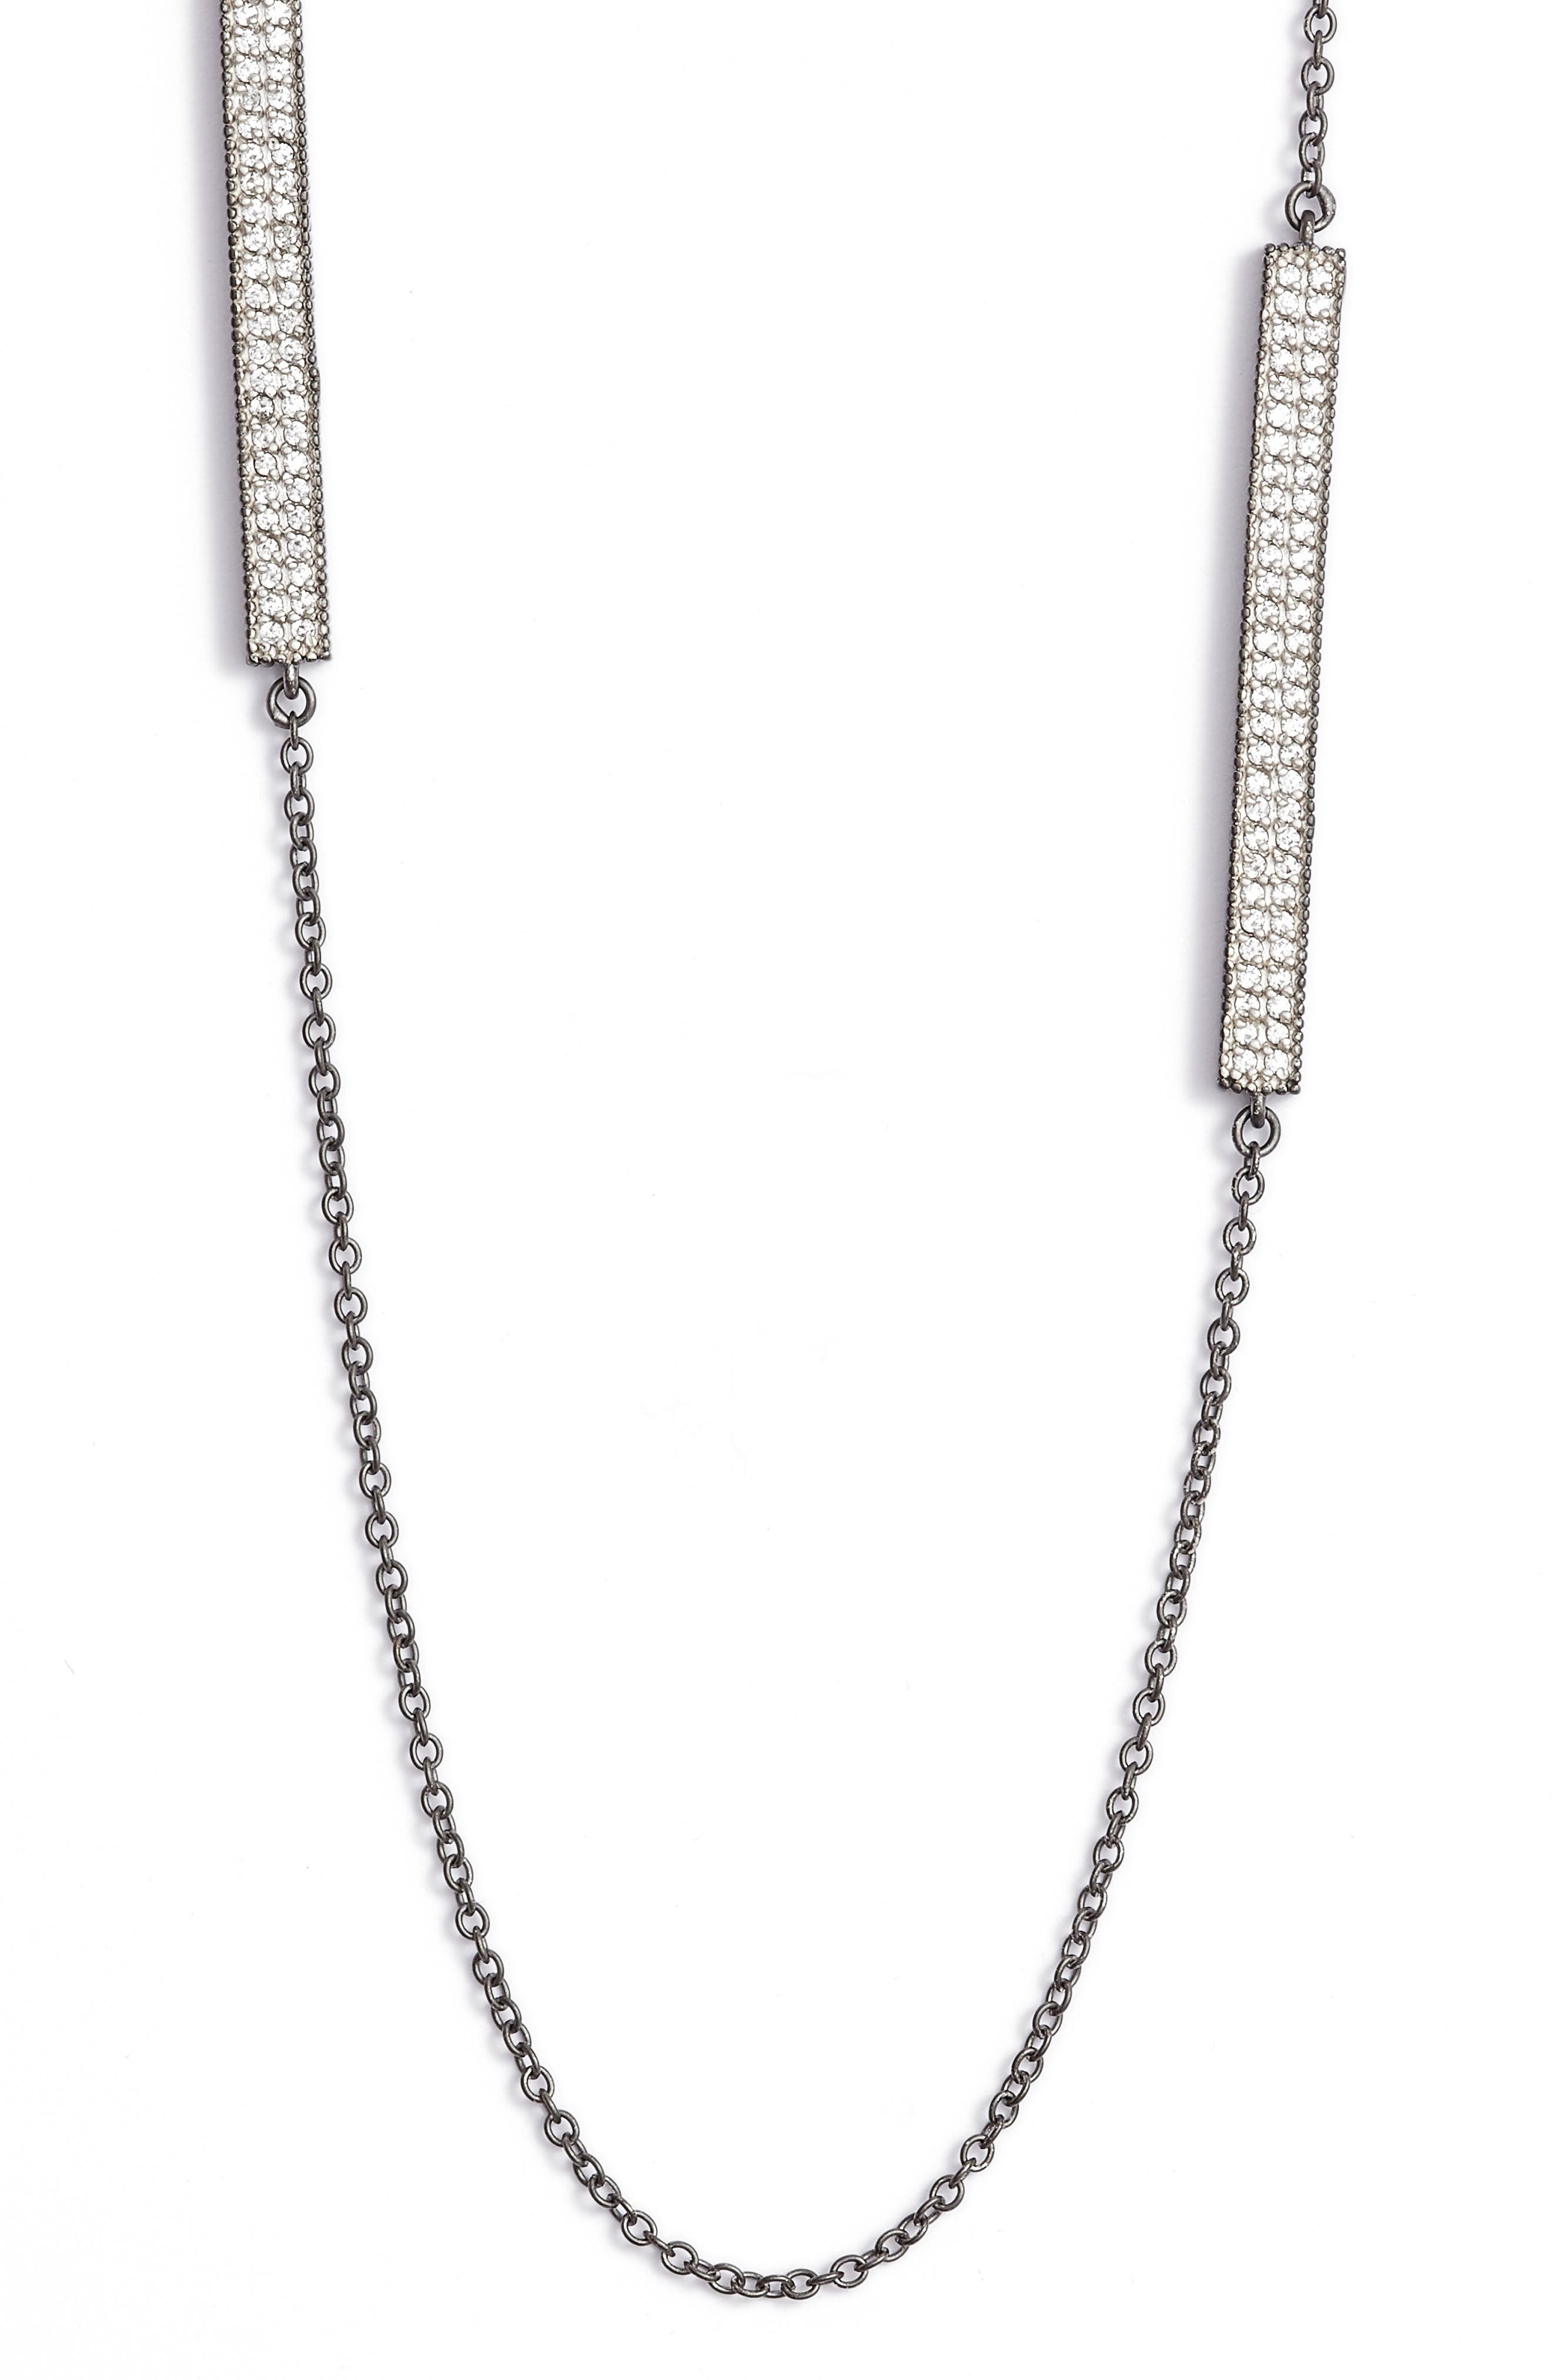 Contemporary Deco Station Necklace,                             Alternate thumbnail 3, color,                             SILVER/ GUNMETAL